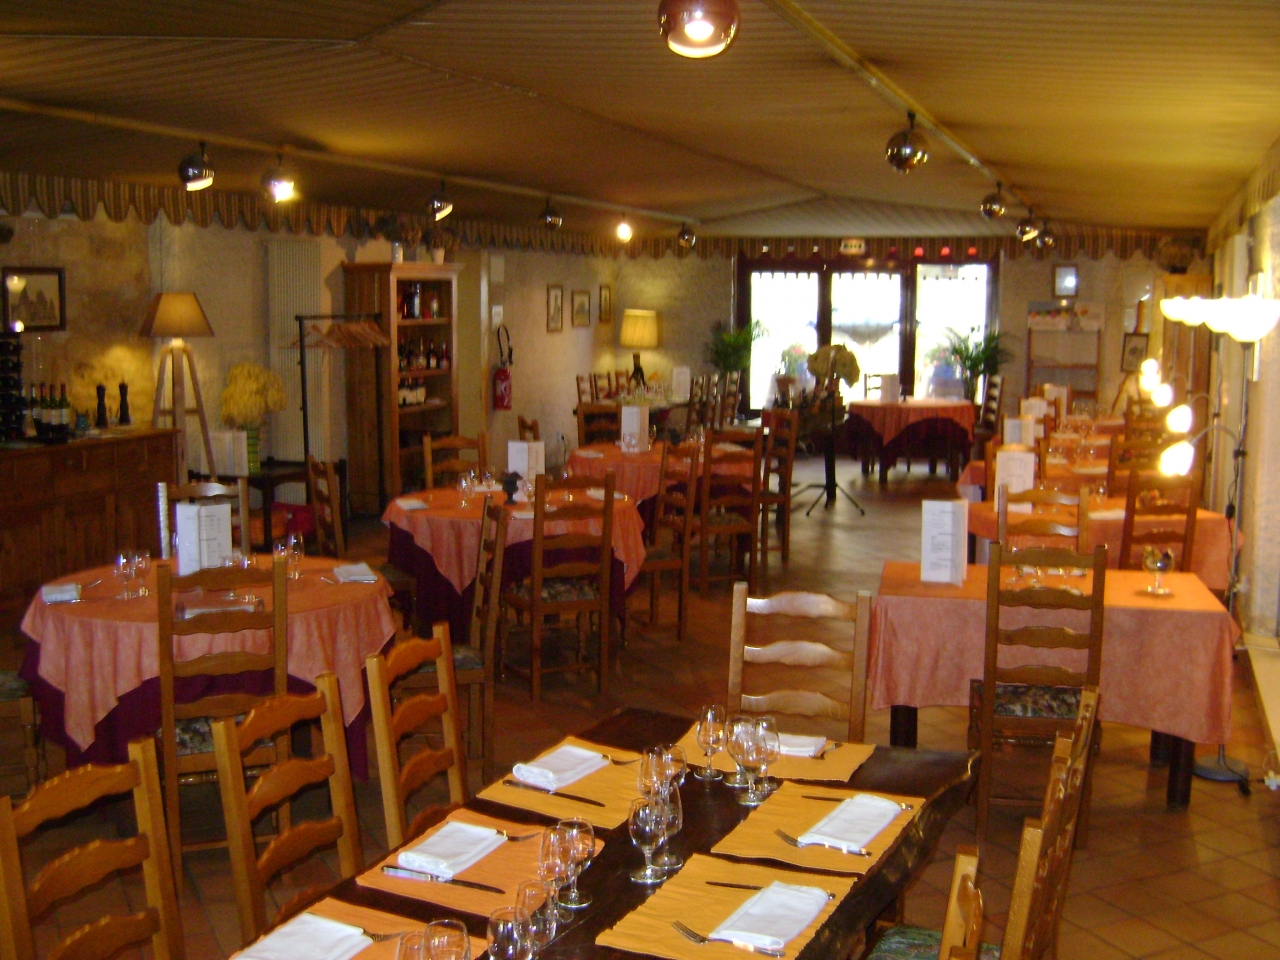 Restaurant Traditionnel à BEAUMONT DU PERIGORD 24440